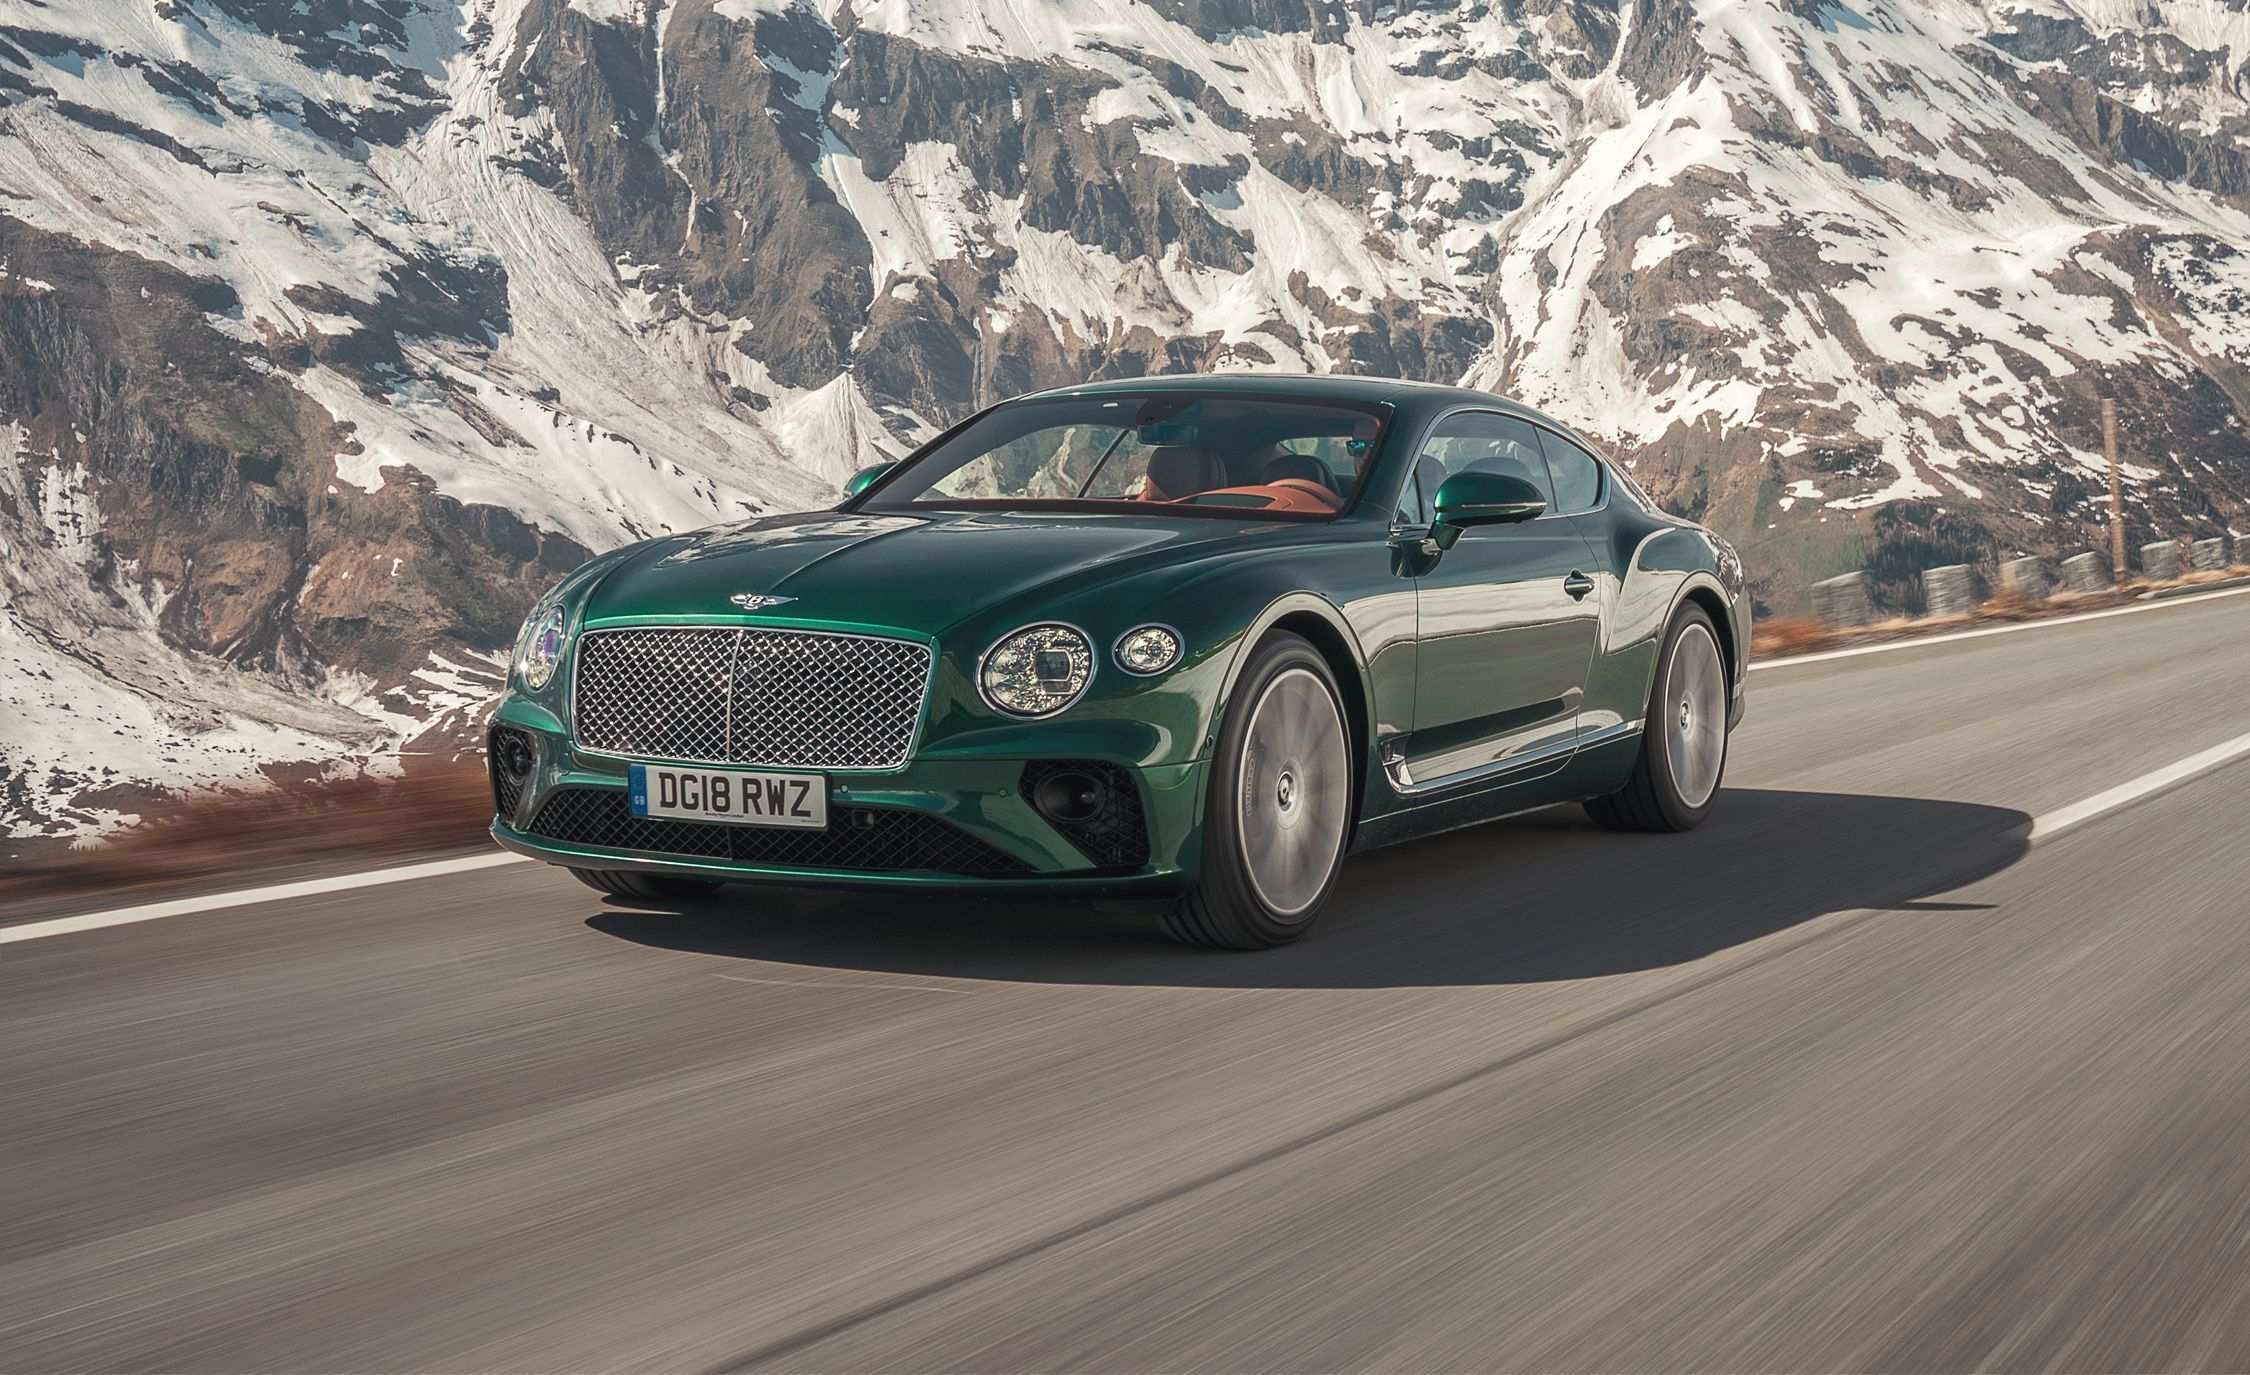 13 New 2019 Bentley Continental Gt Weight Photos by 2019 Bentley Continental Gt Weight